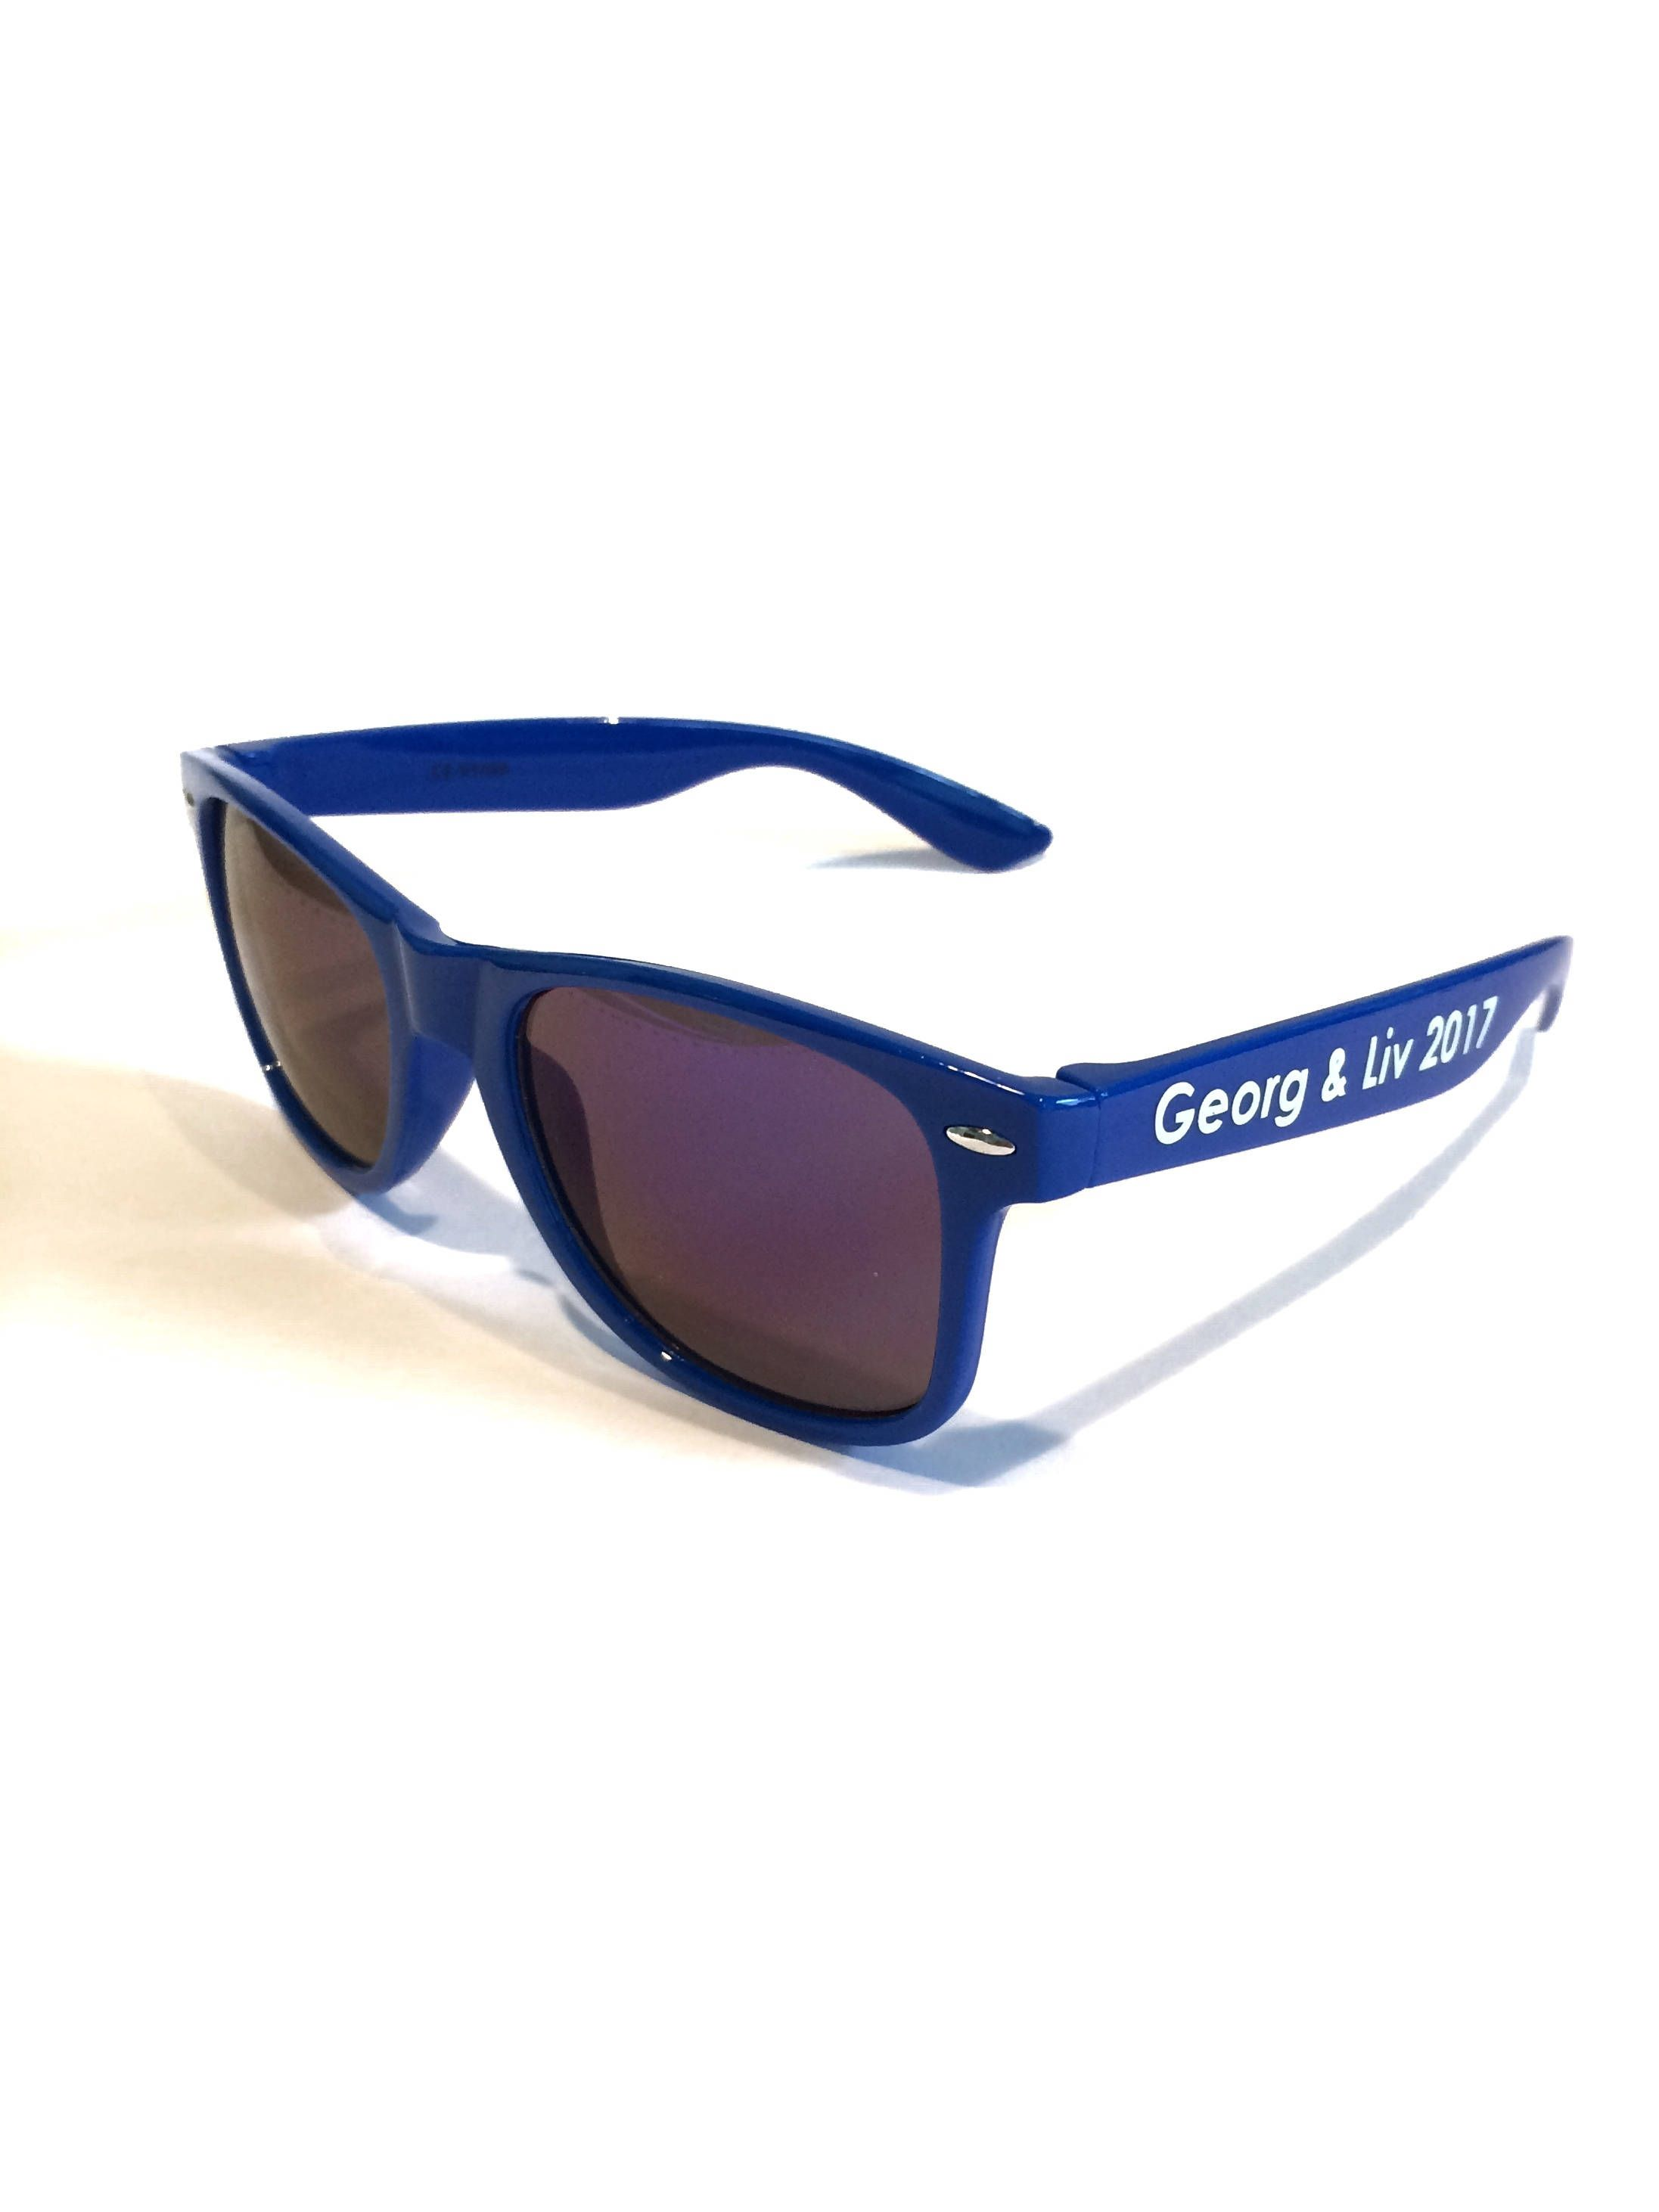 Cheap Mirrored Sunglasses Perfect For Wedding Parties Favor Bridal Party Gifts